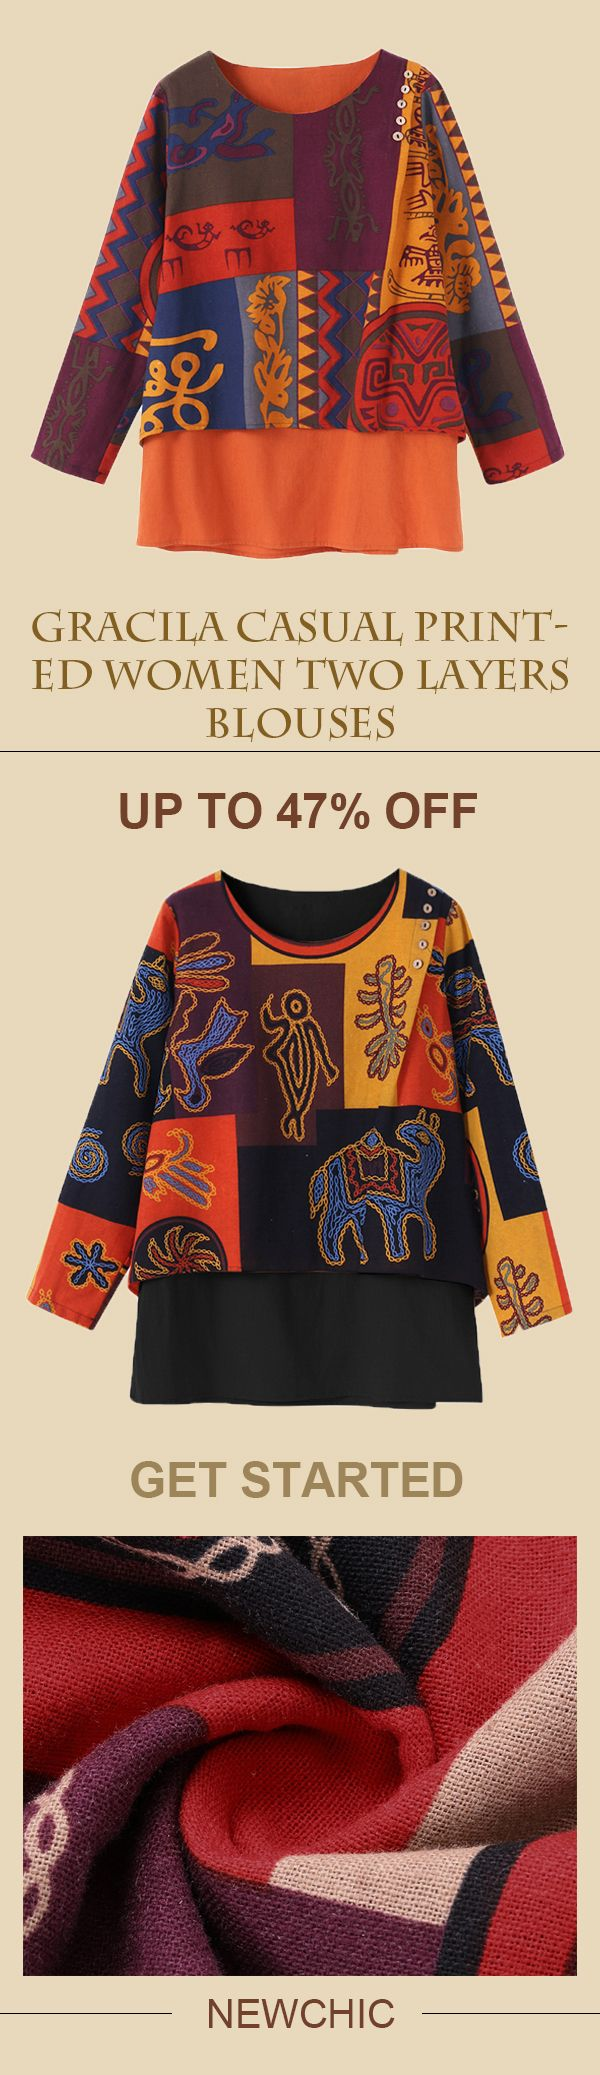 [Newchic Online Shopping] 47%OFF Gracila Women's Casual Printed Blouses with Double Layer